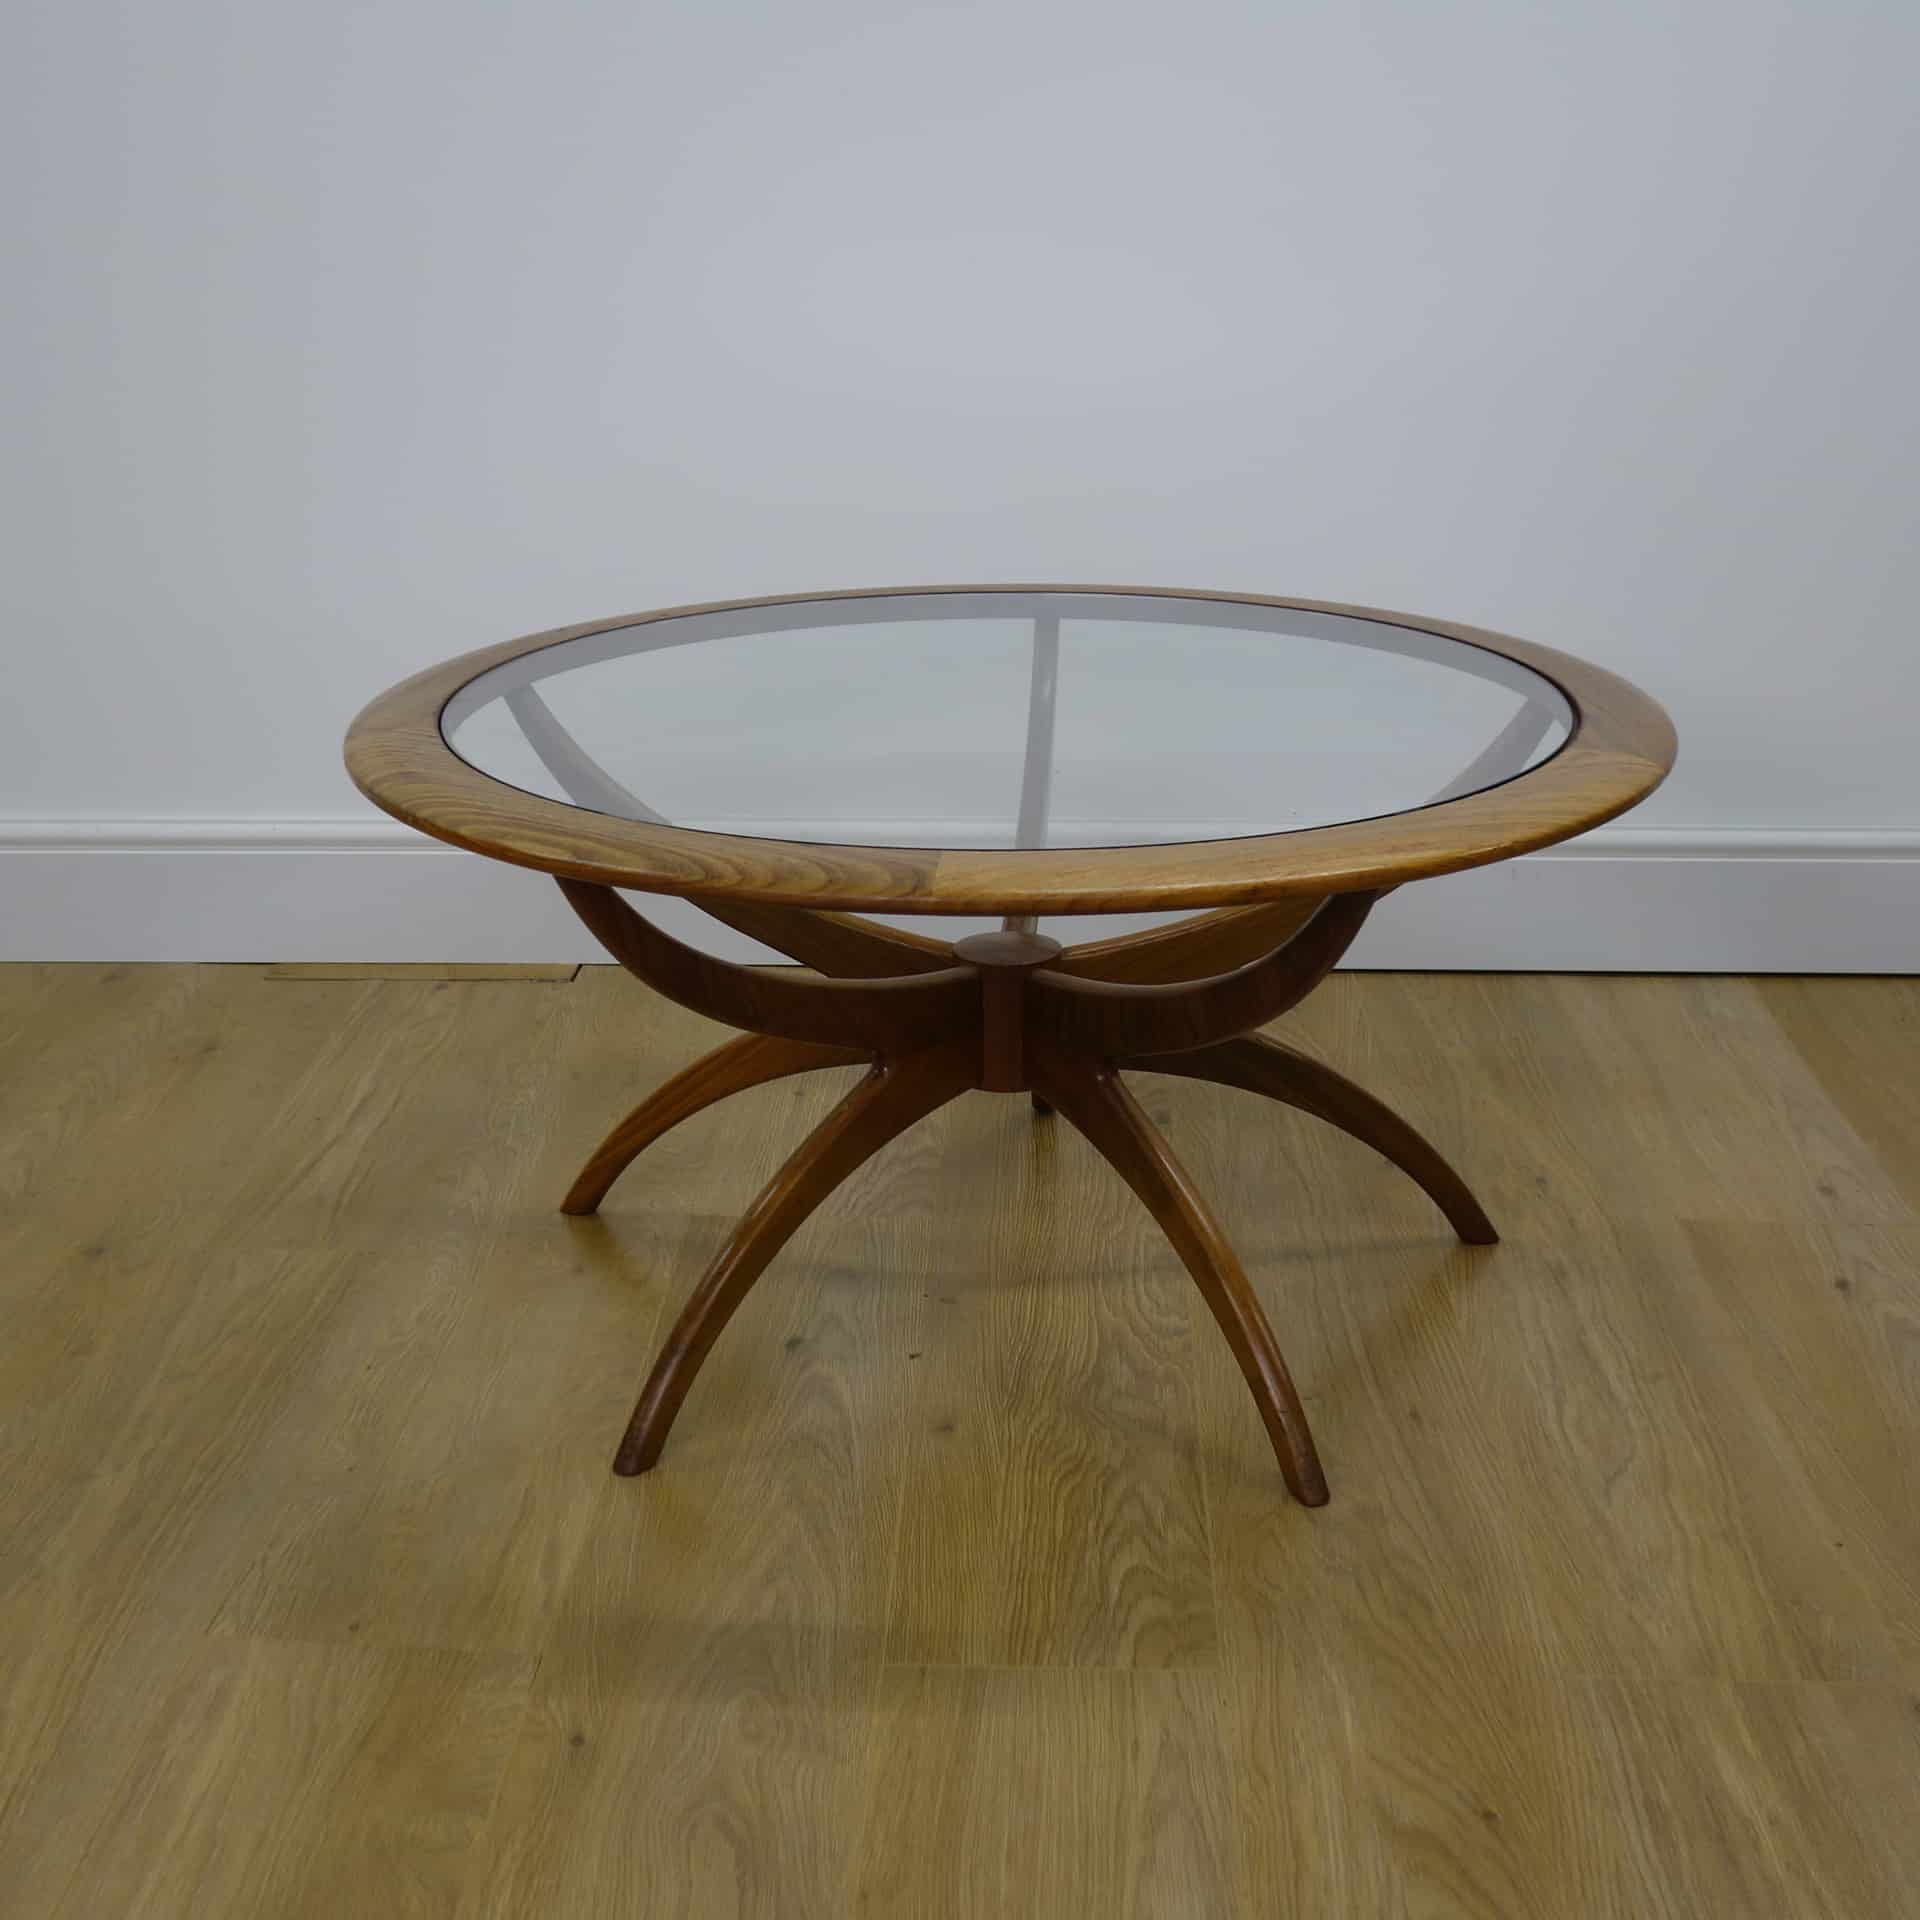 1960s teak spider table by G Plan